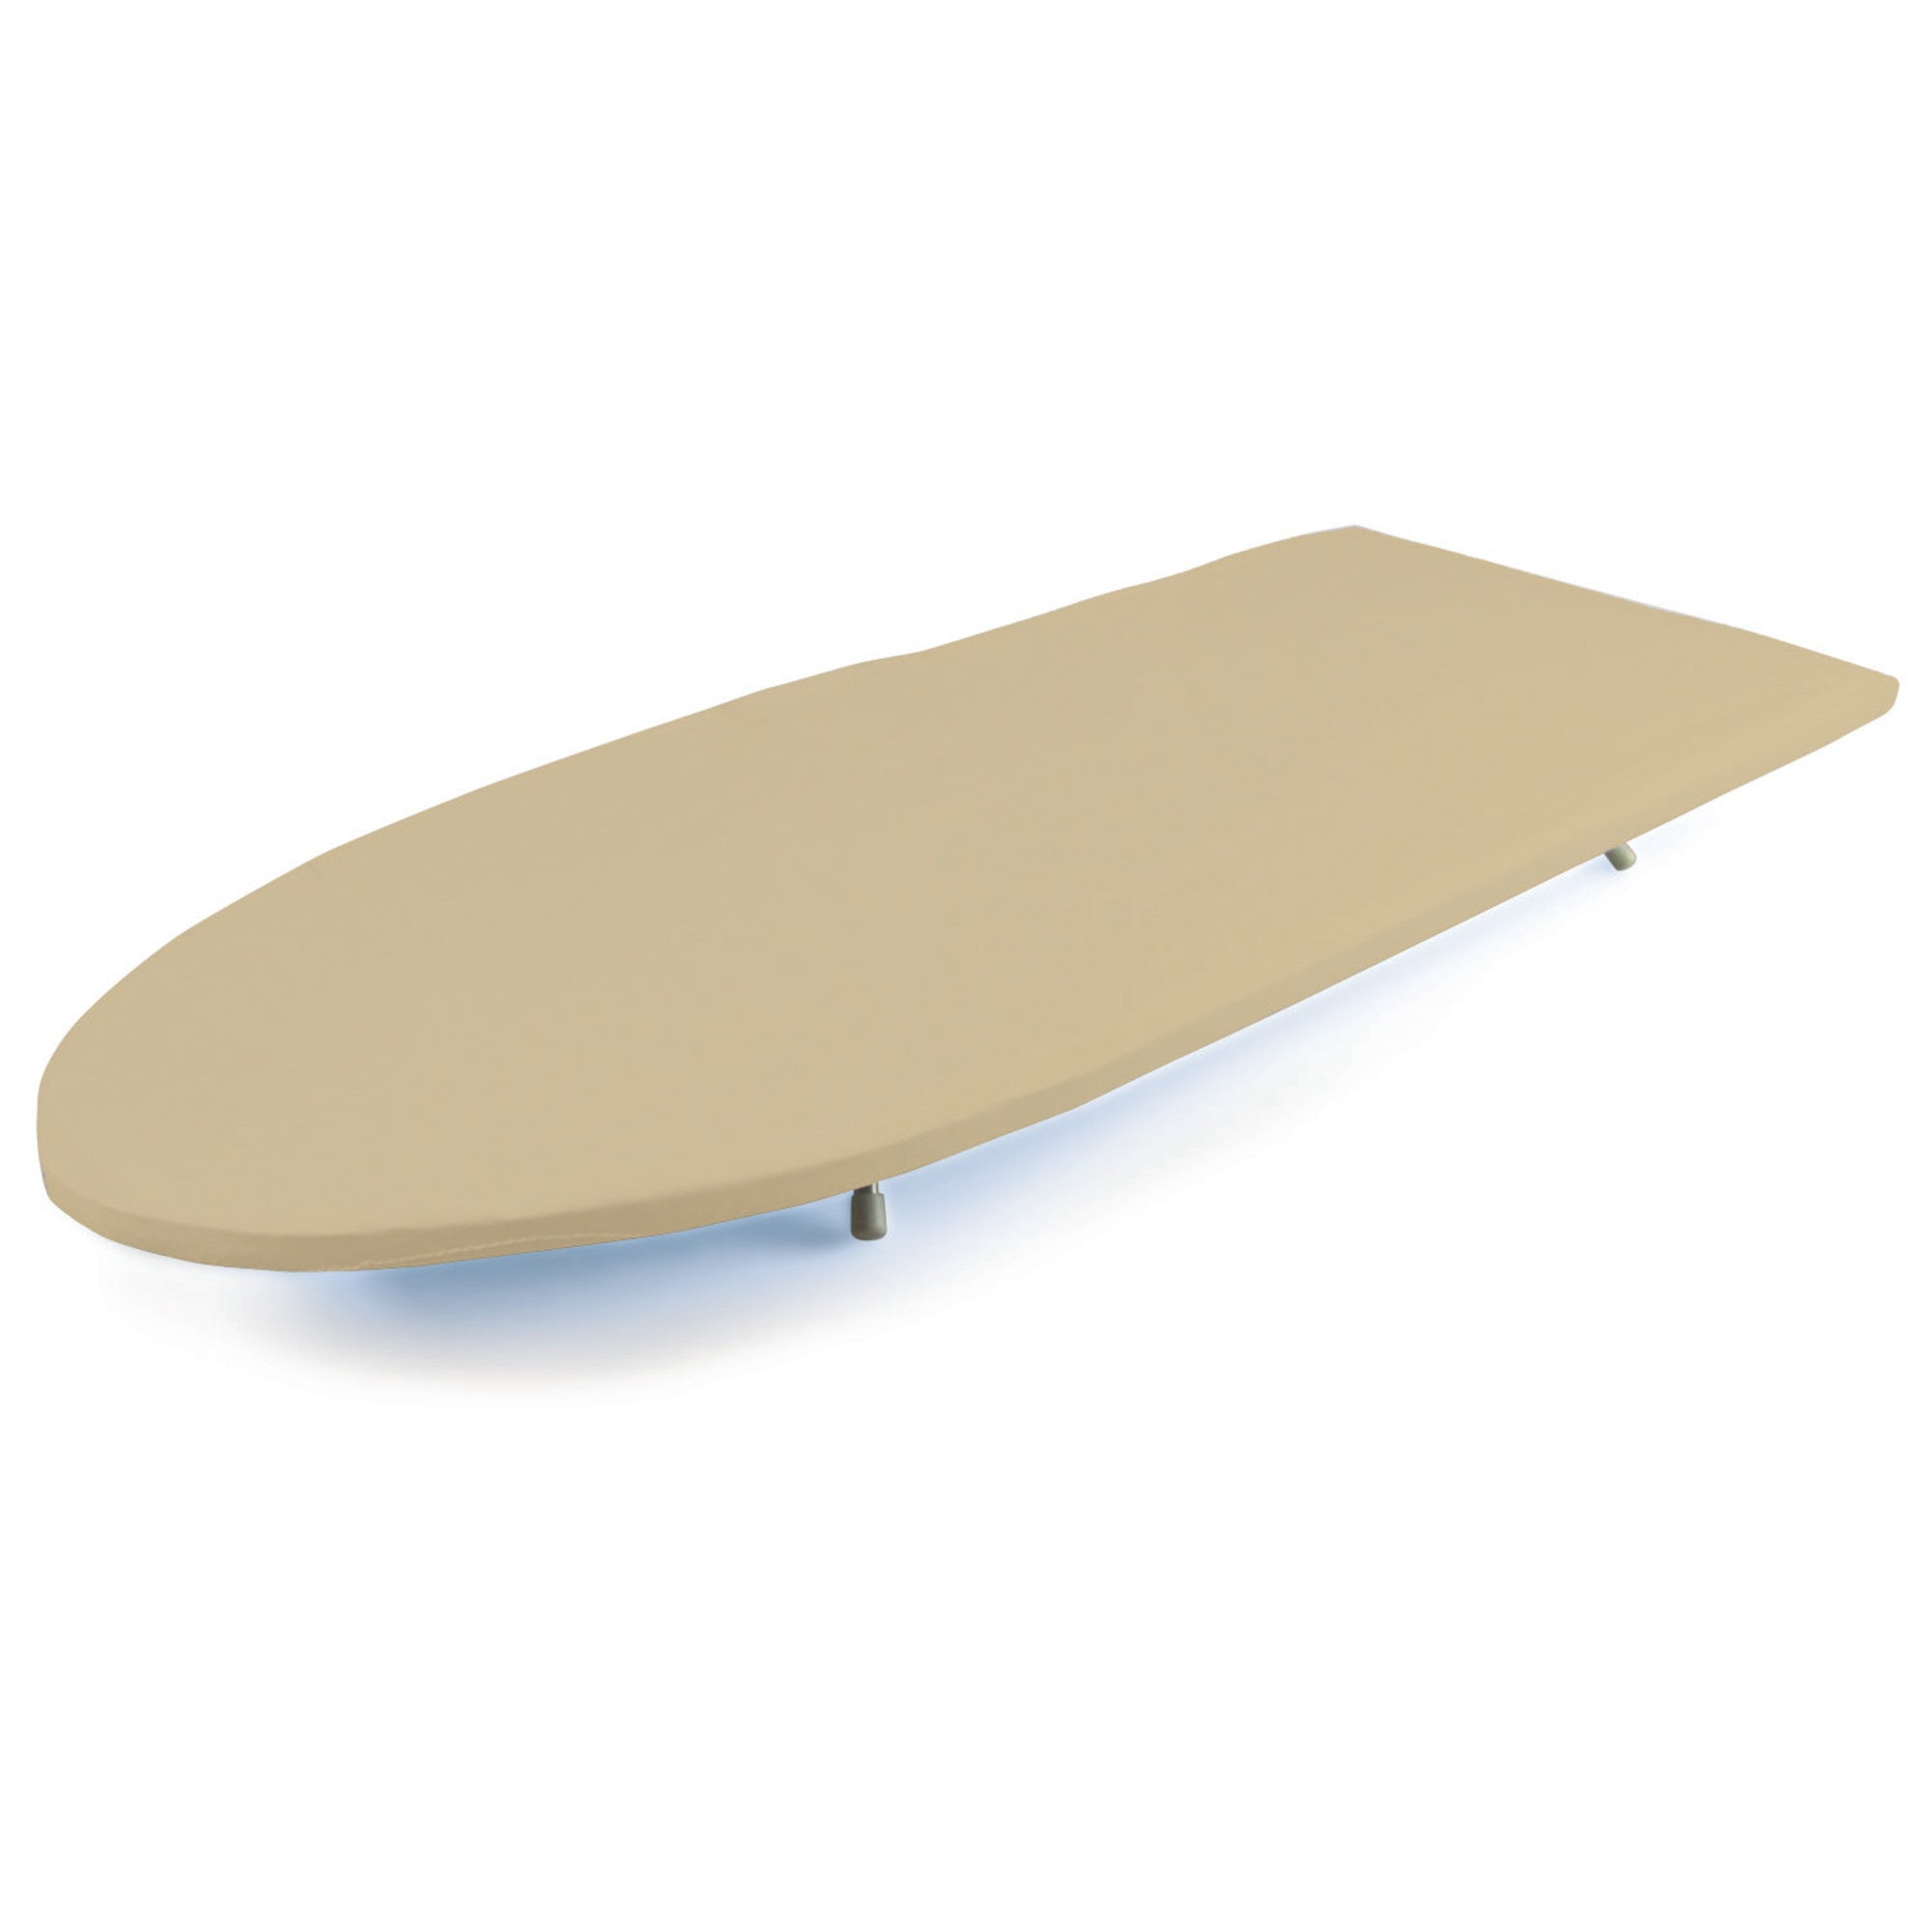 Sunbeam MDF Table Top Ironing Boards, Brown - Brown